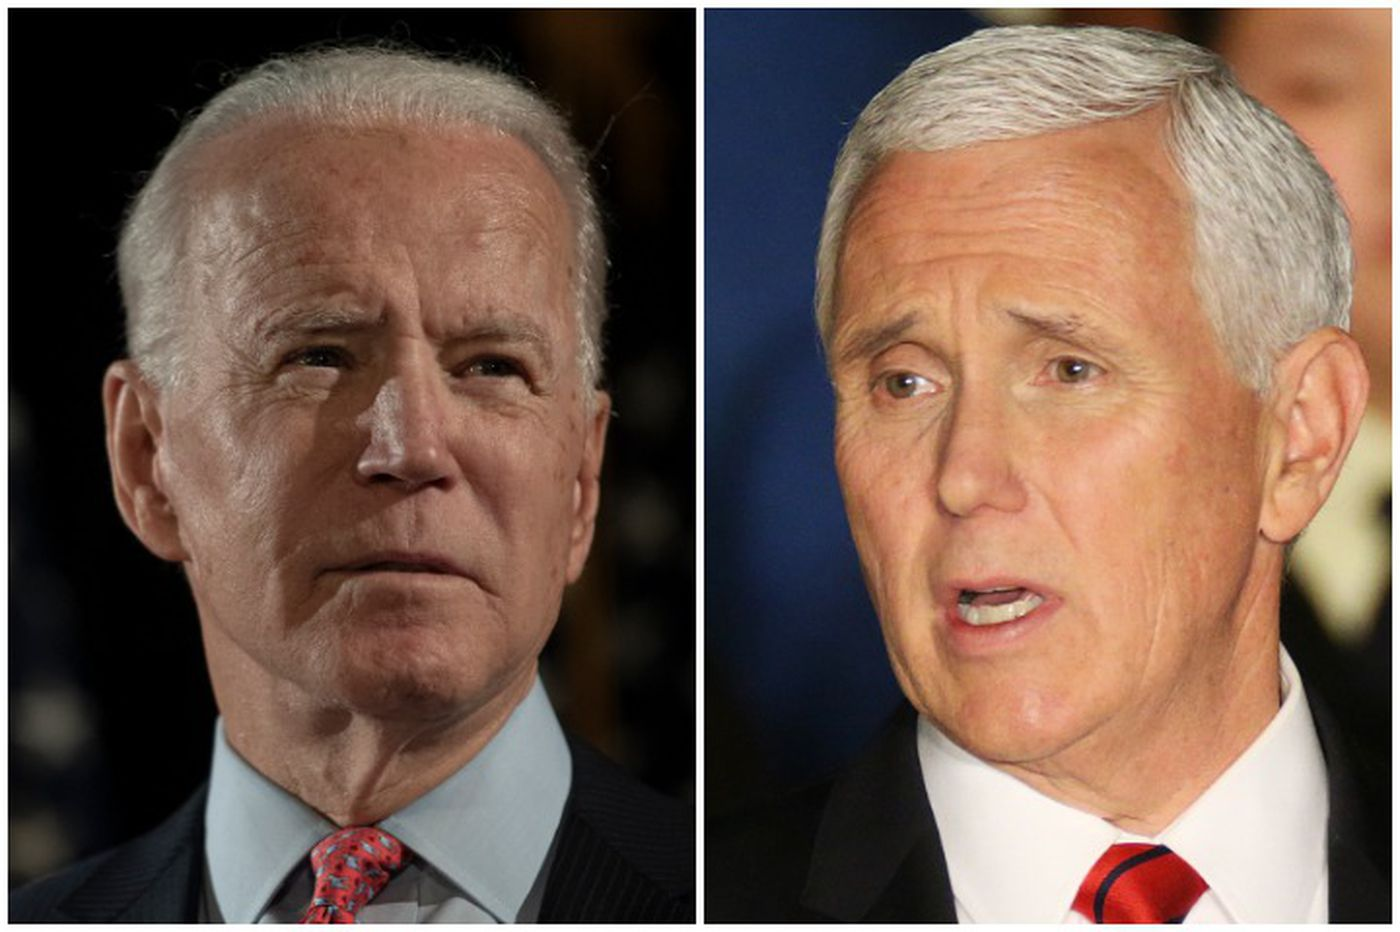 Joe Biden and Mike Pence are visiting 4 key areas in Pennsylvania. Here's why they're so important.